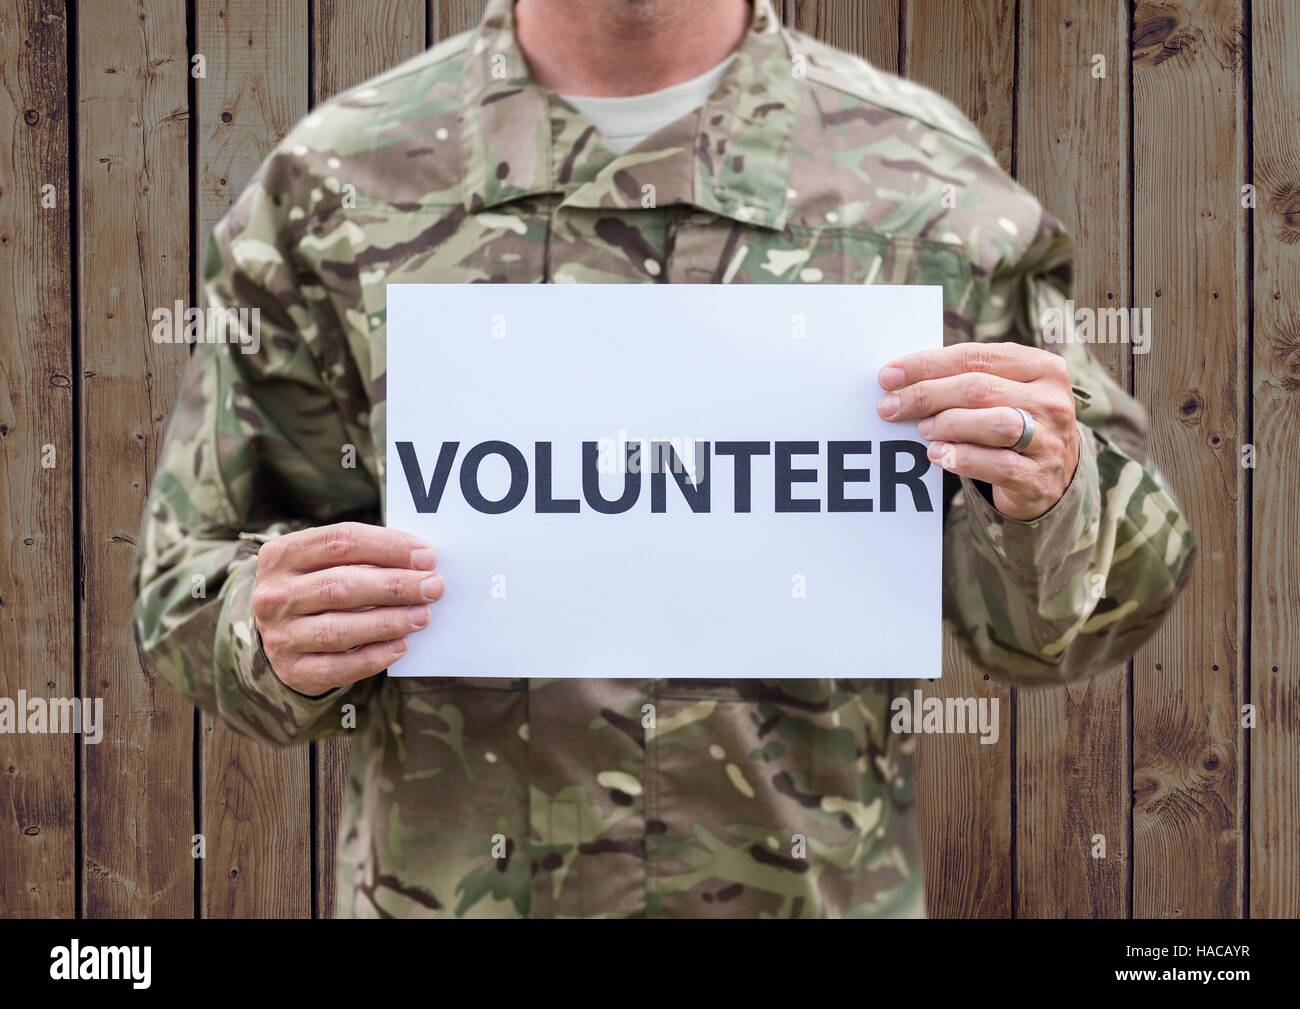 Person in camouflage uniform holding placard which reads volunteer - Stock Image